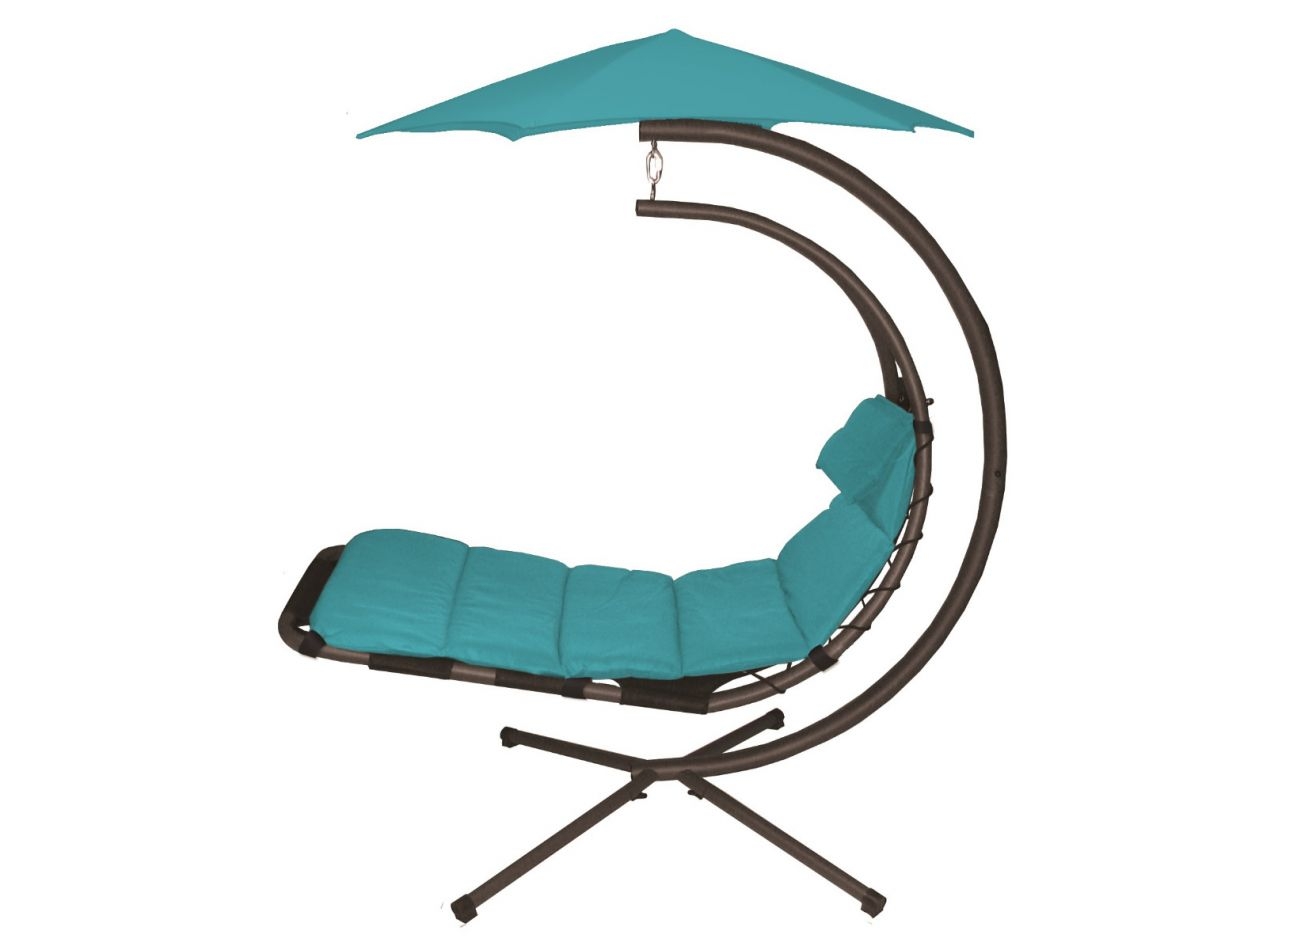 Original 1 Person Dream Chair Turquoise